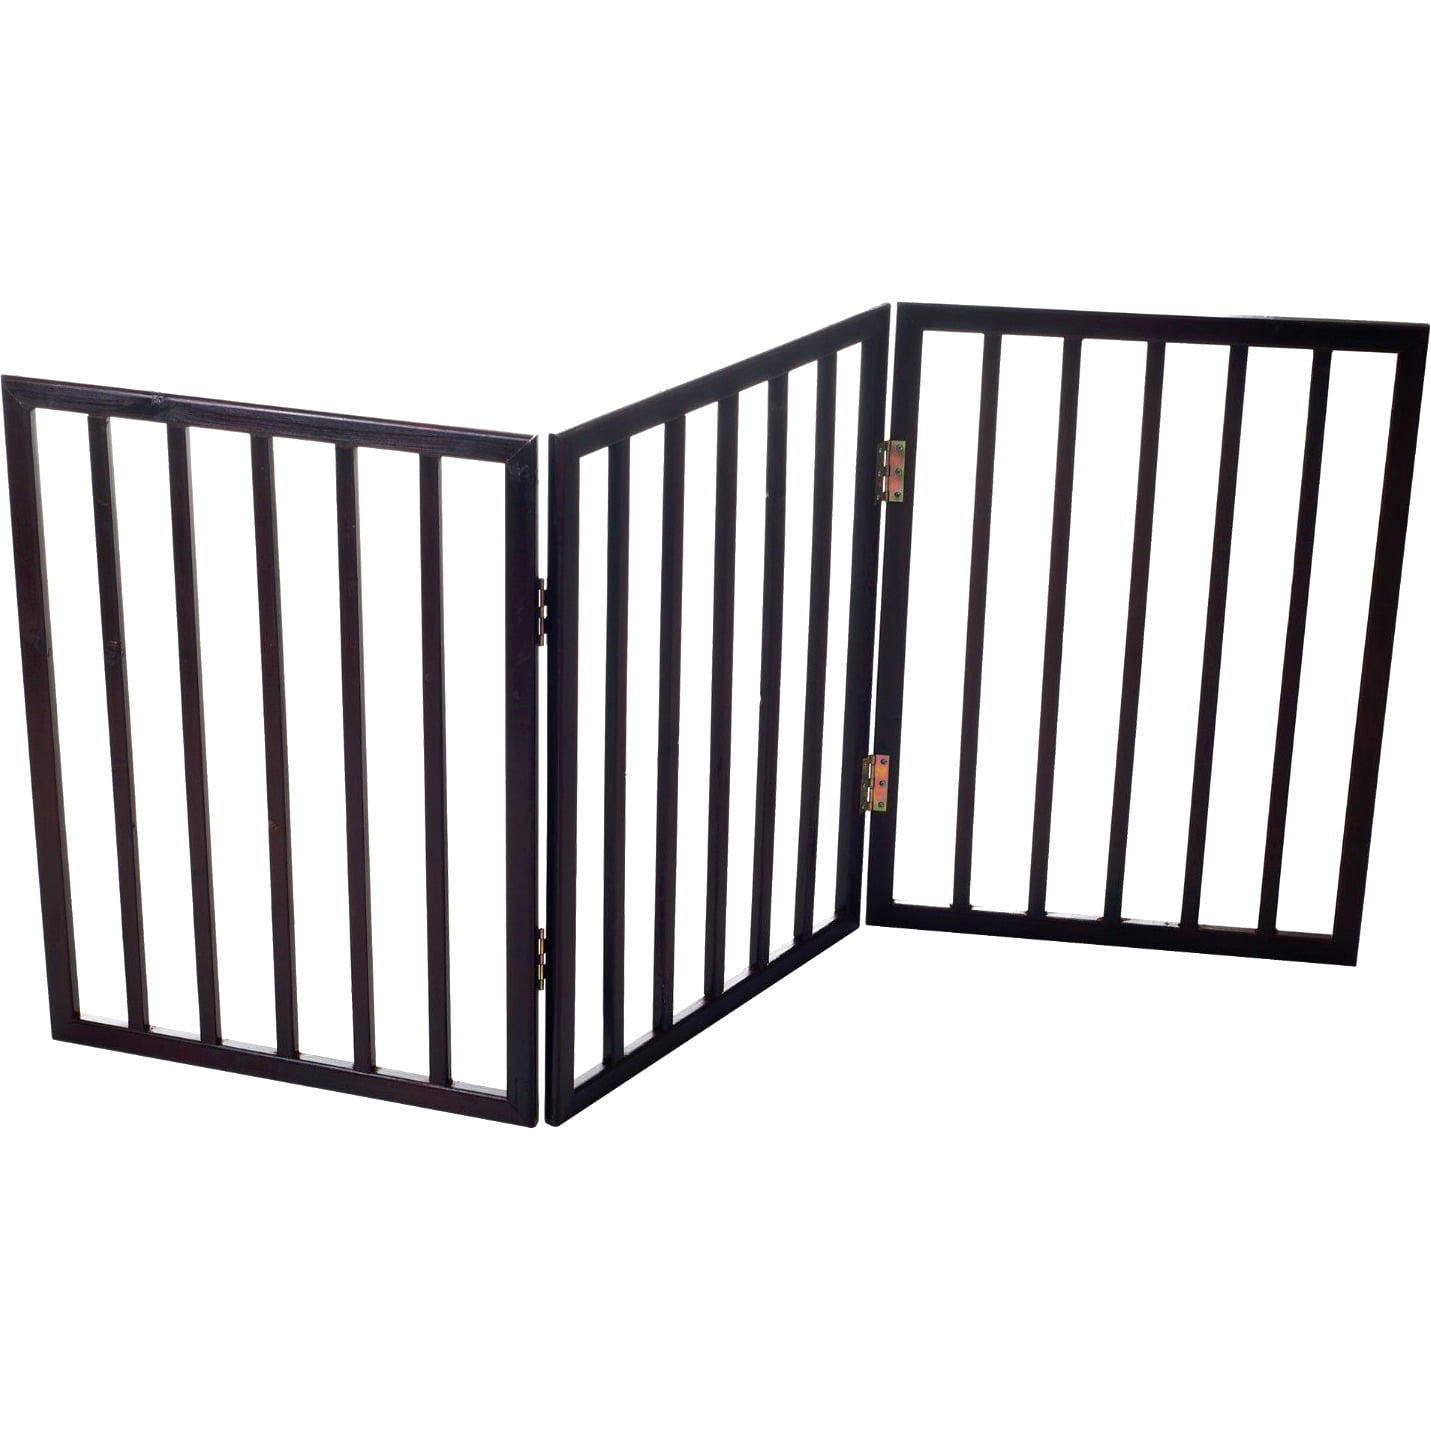 Foldable Free Standing Wooden Pet Gate Light Weight